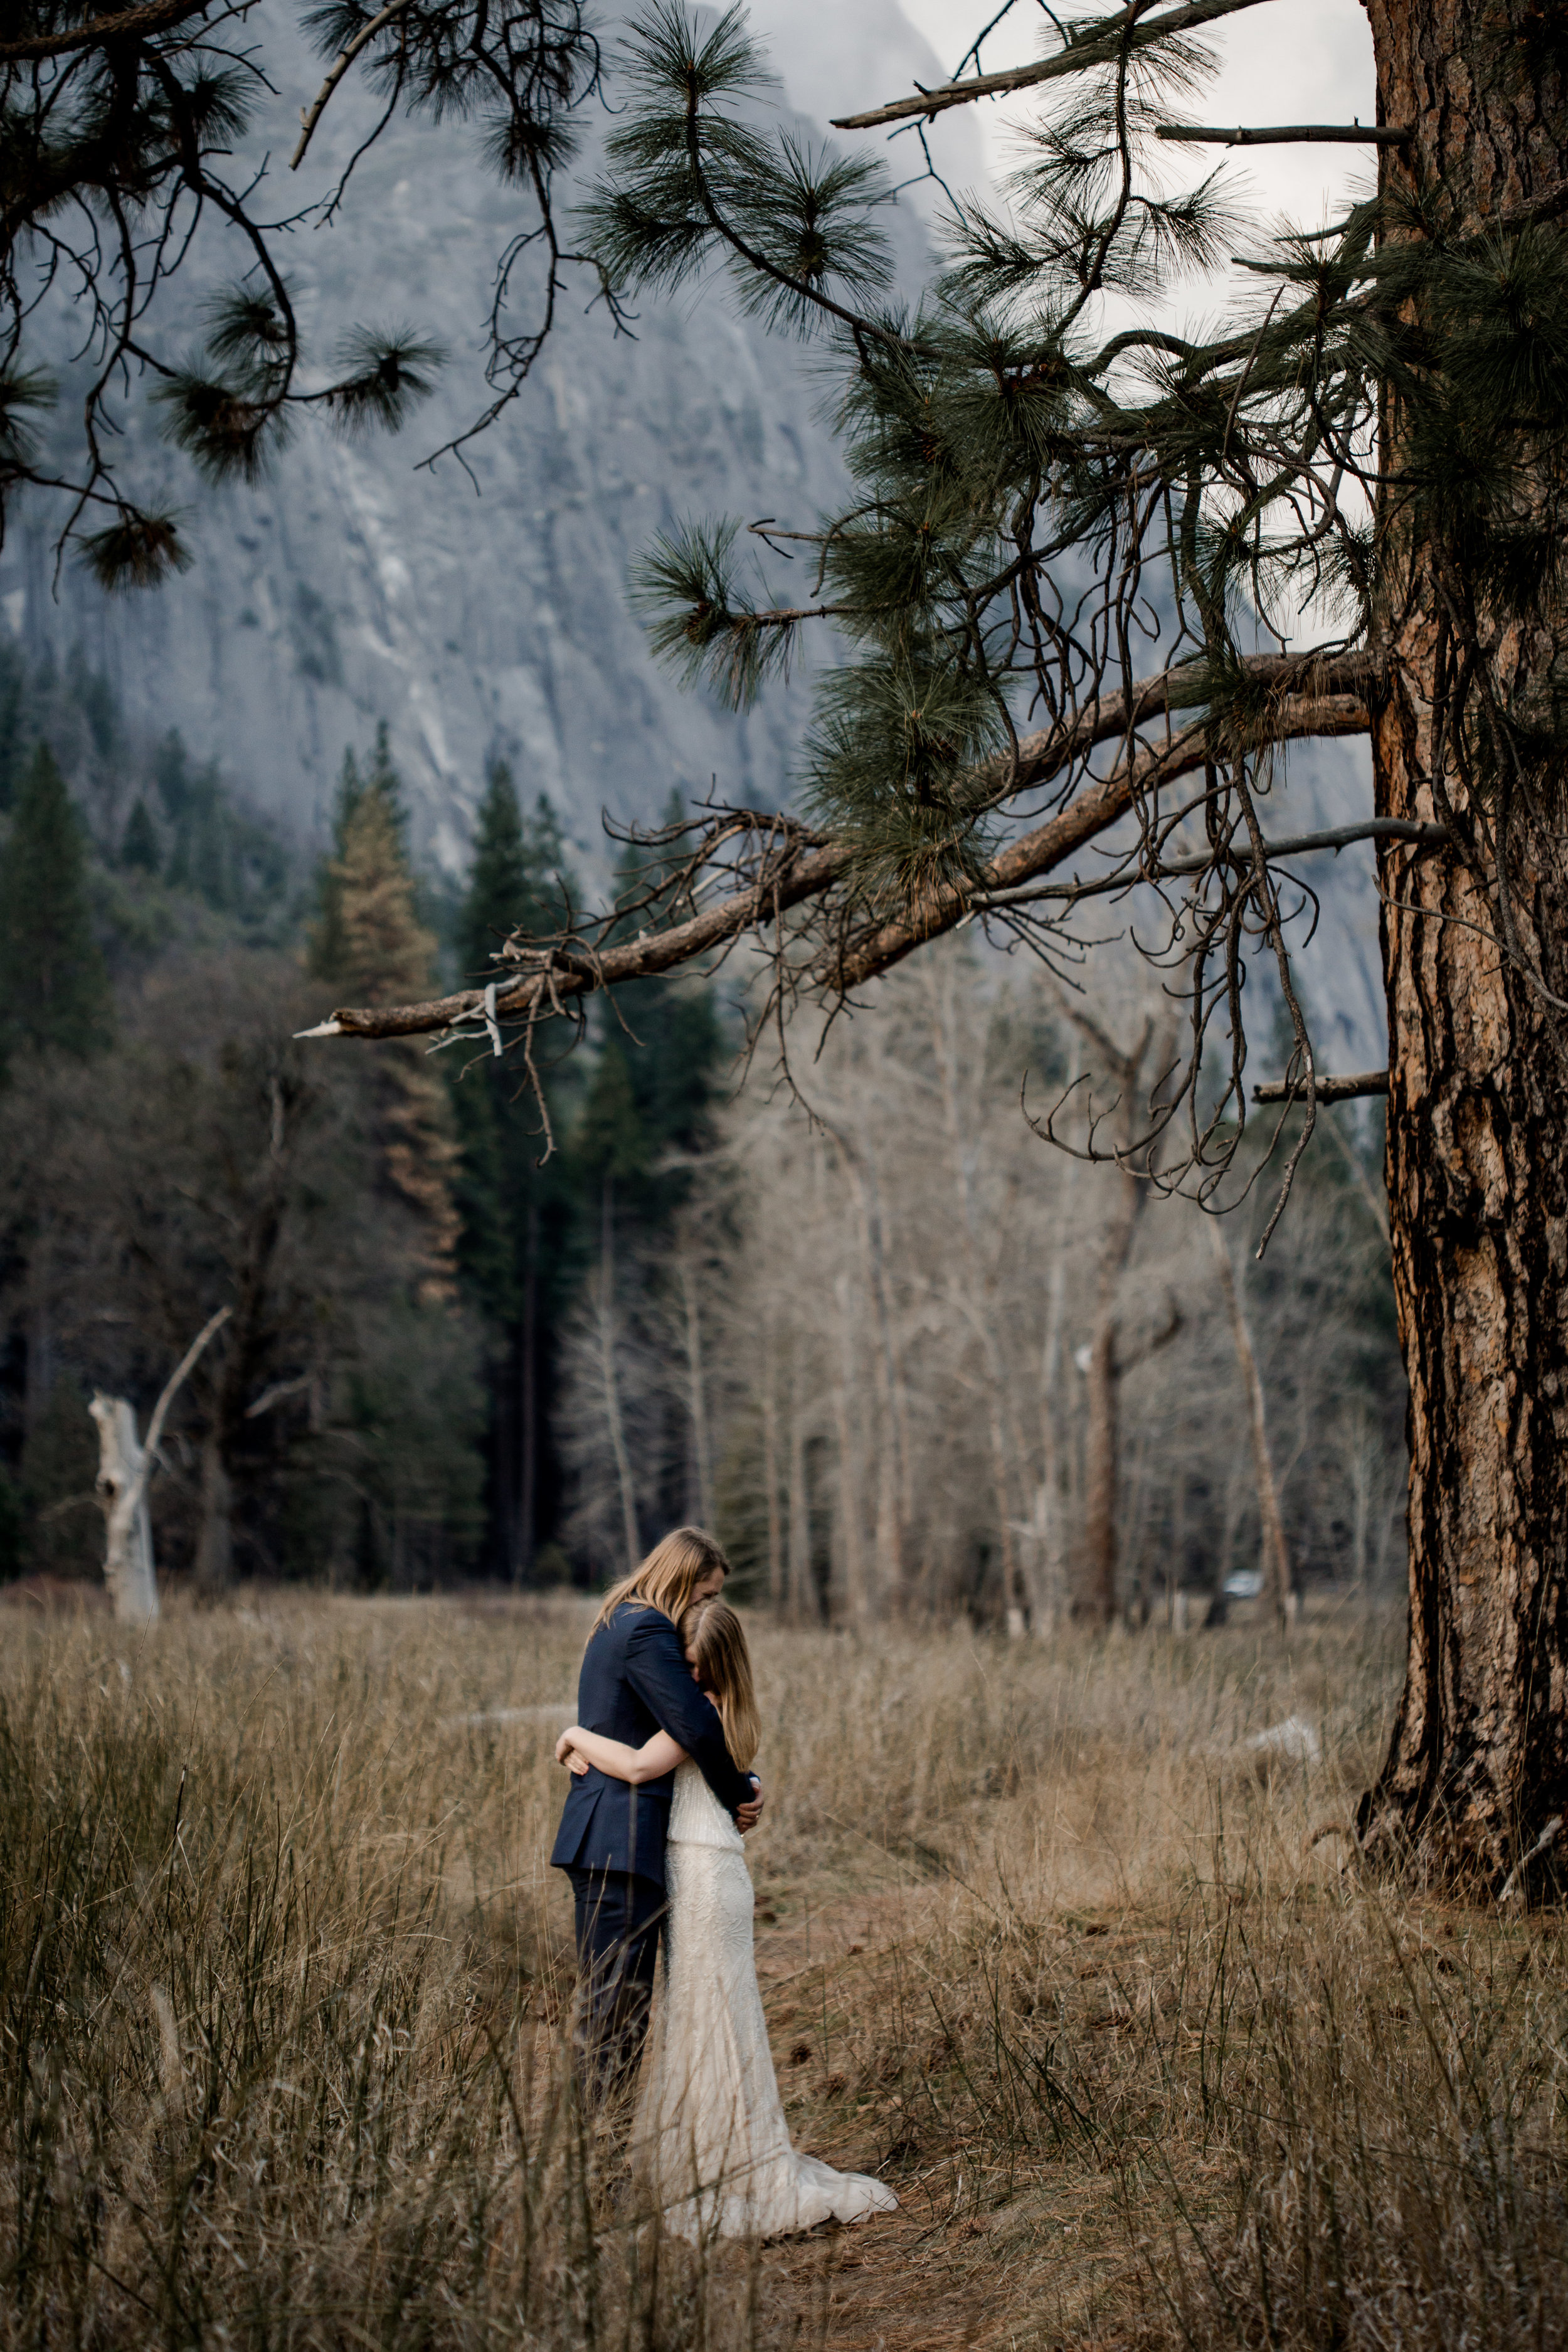 nicole-daacke-photography-yousemite-national-park-elopement-photographer-winter-cloud-moody-elope-inspiration-yosemite-valley-tunnel-view-winter-cloud-fog-weather-wedding-photos-72.jpg